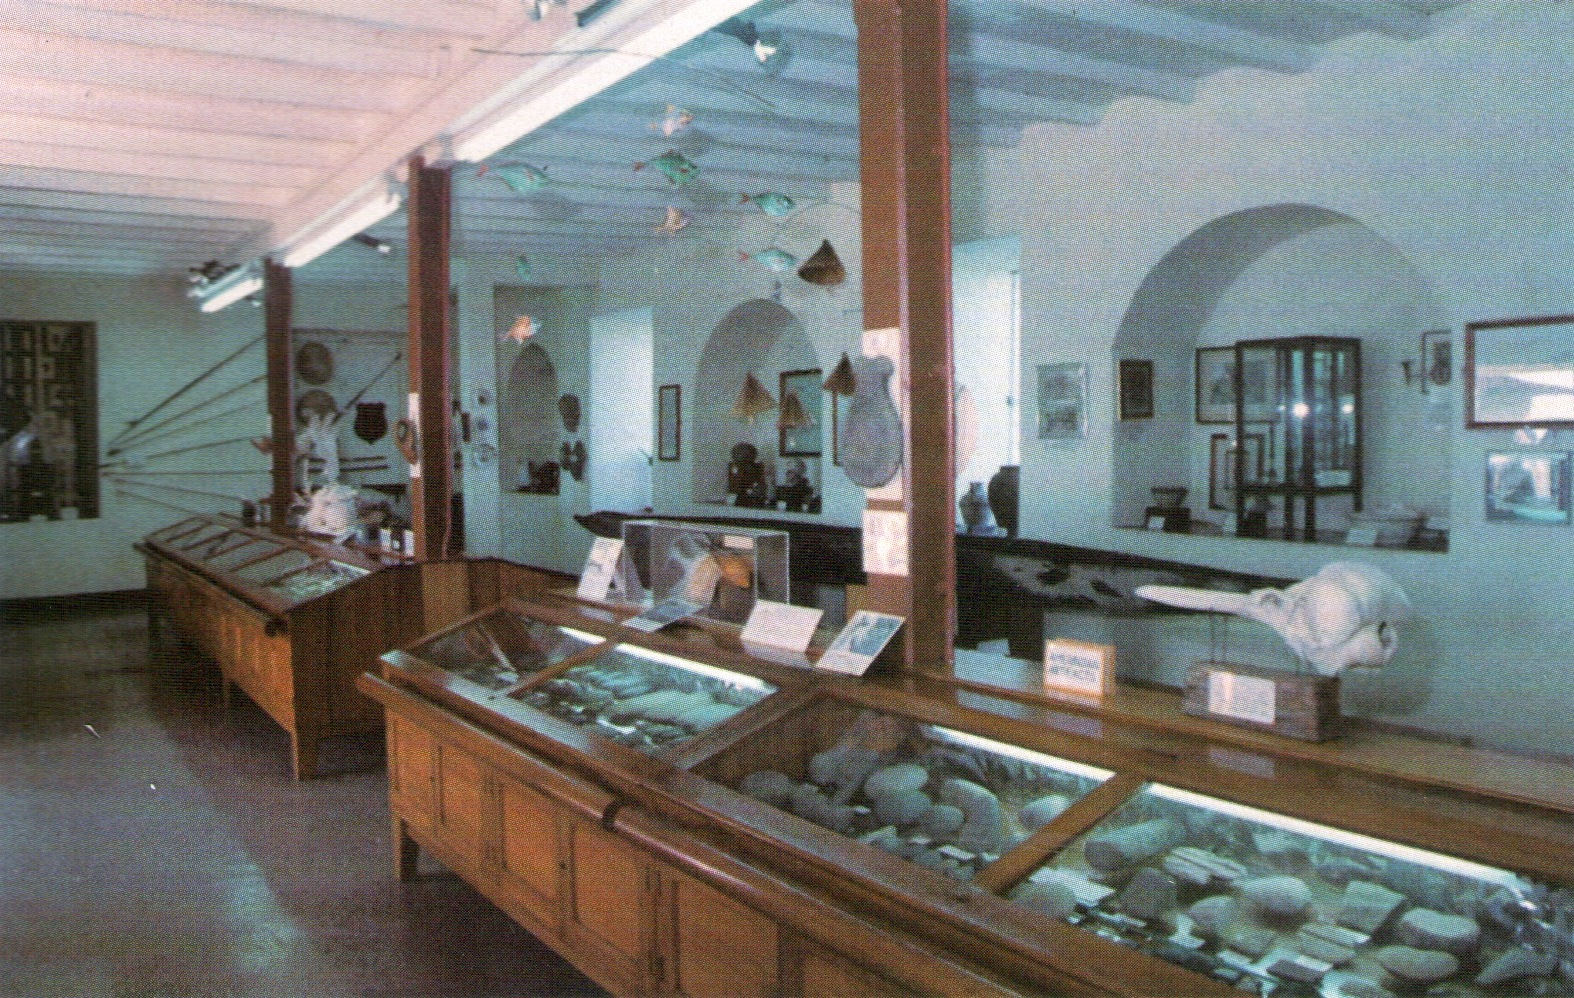 Amerindian artefacts, some more than 4,000 years old, on display at the Tobago Museum. Photograph by Kenneth Lee